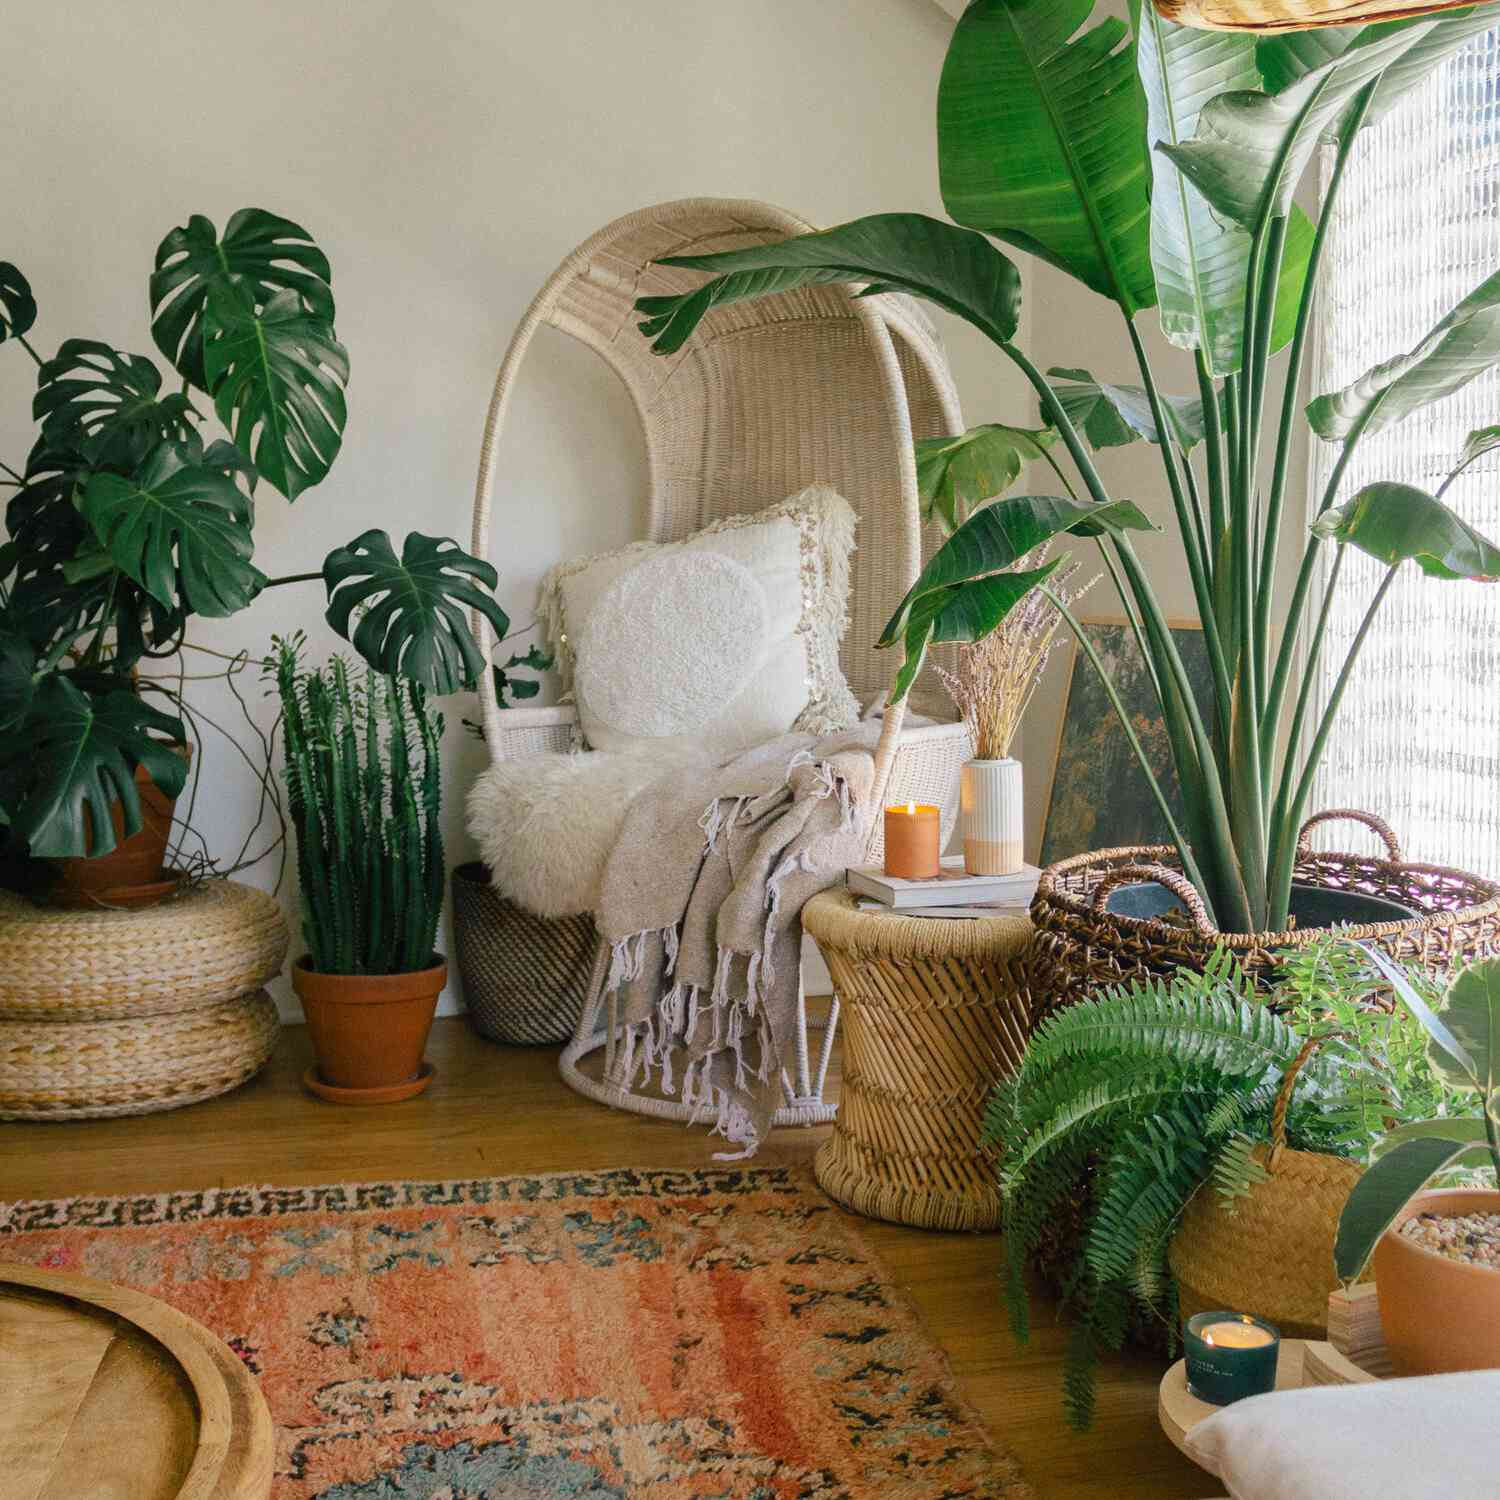 Living room plant oasis with basket chair and boho accents